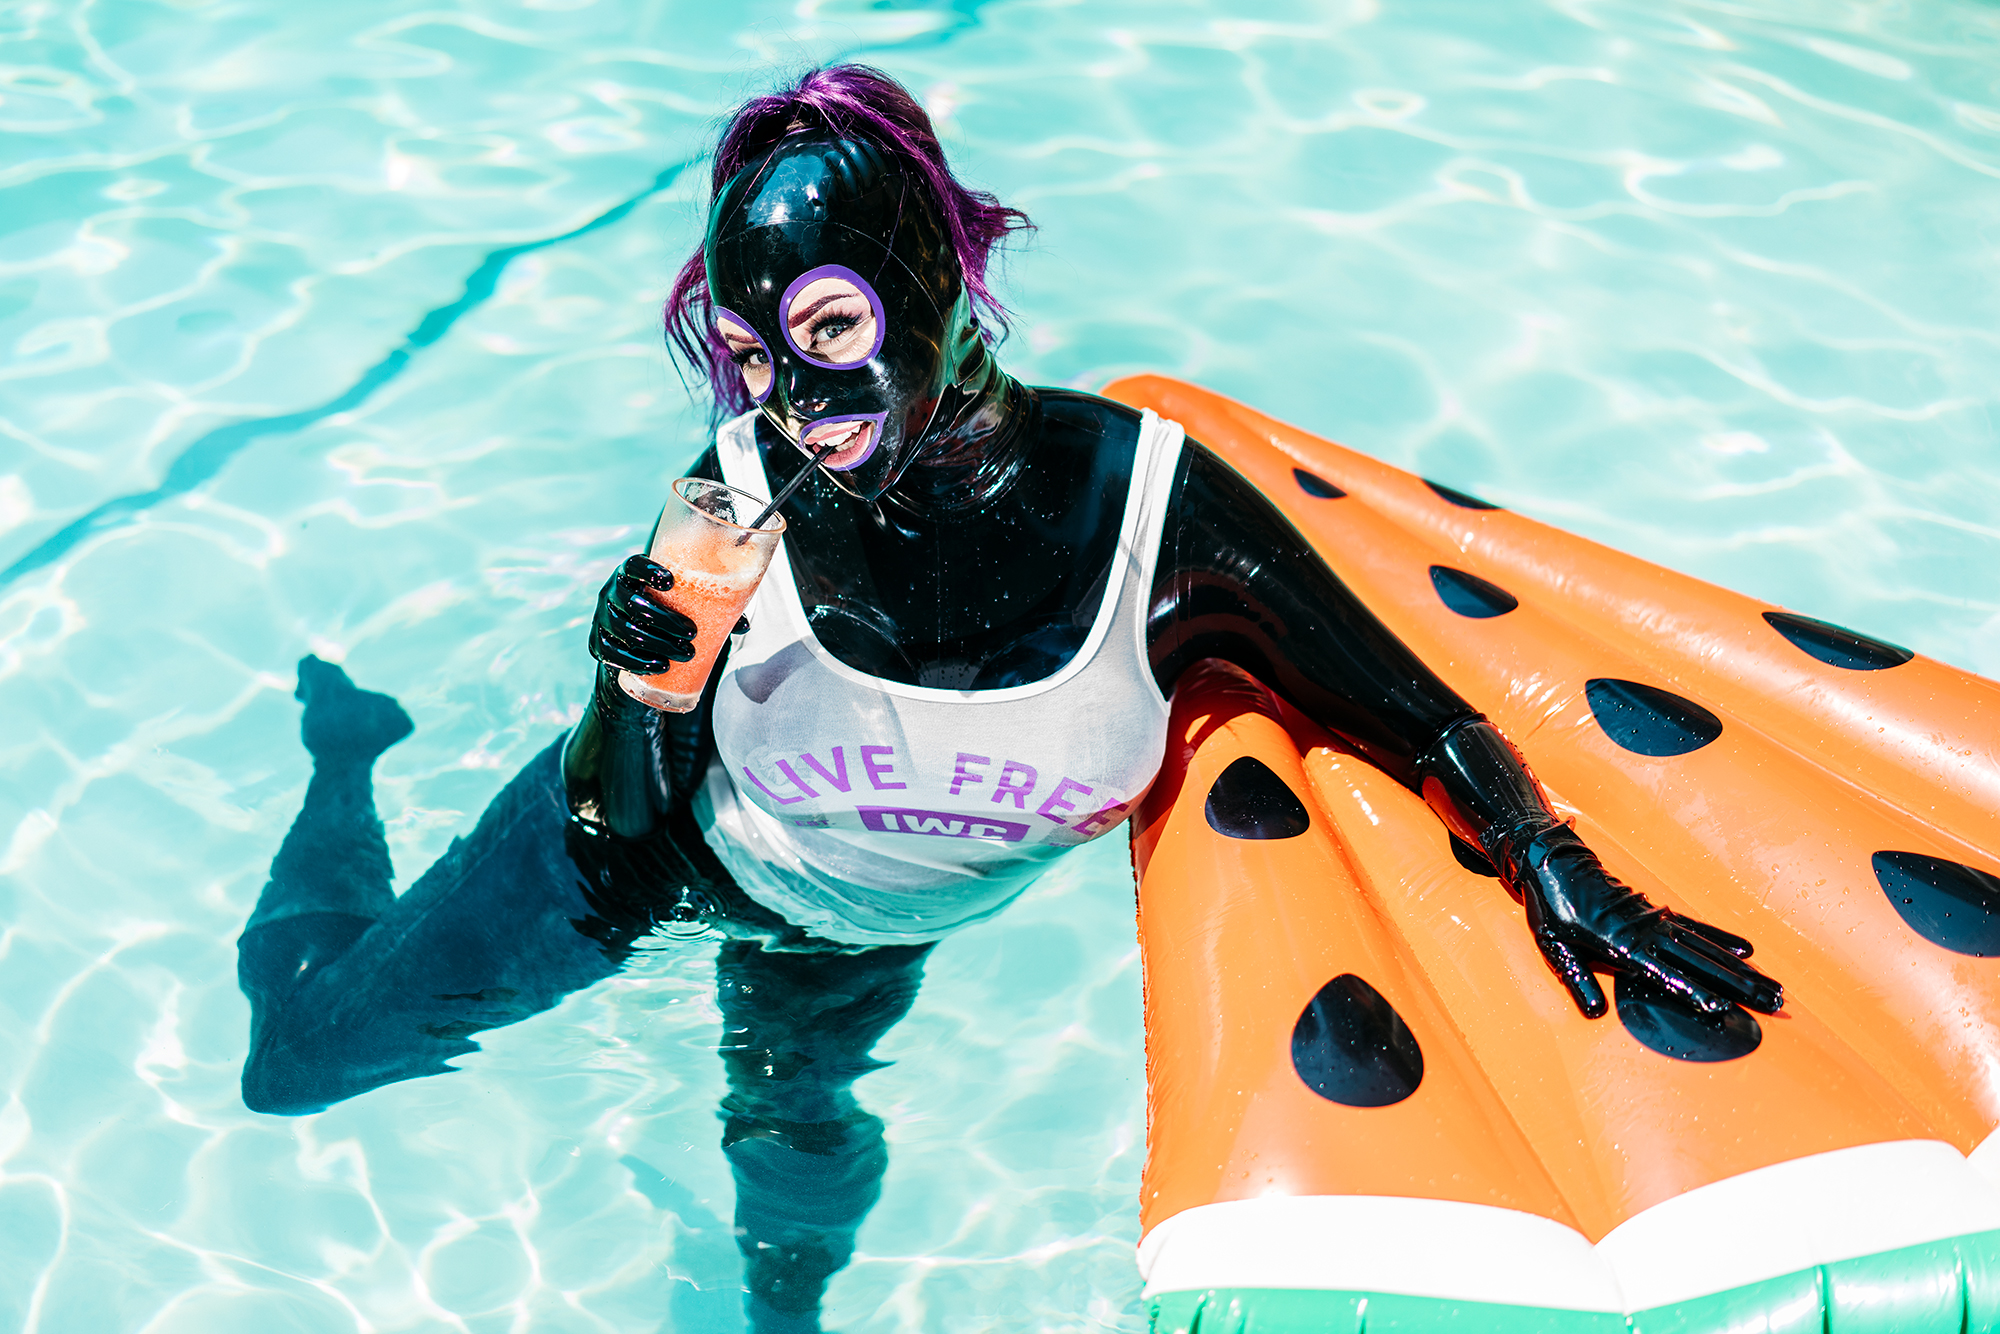 """IWantClips 2018 Photo Contest, Winner for """"Pool Party"""" $1000 Prize Winner"""